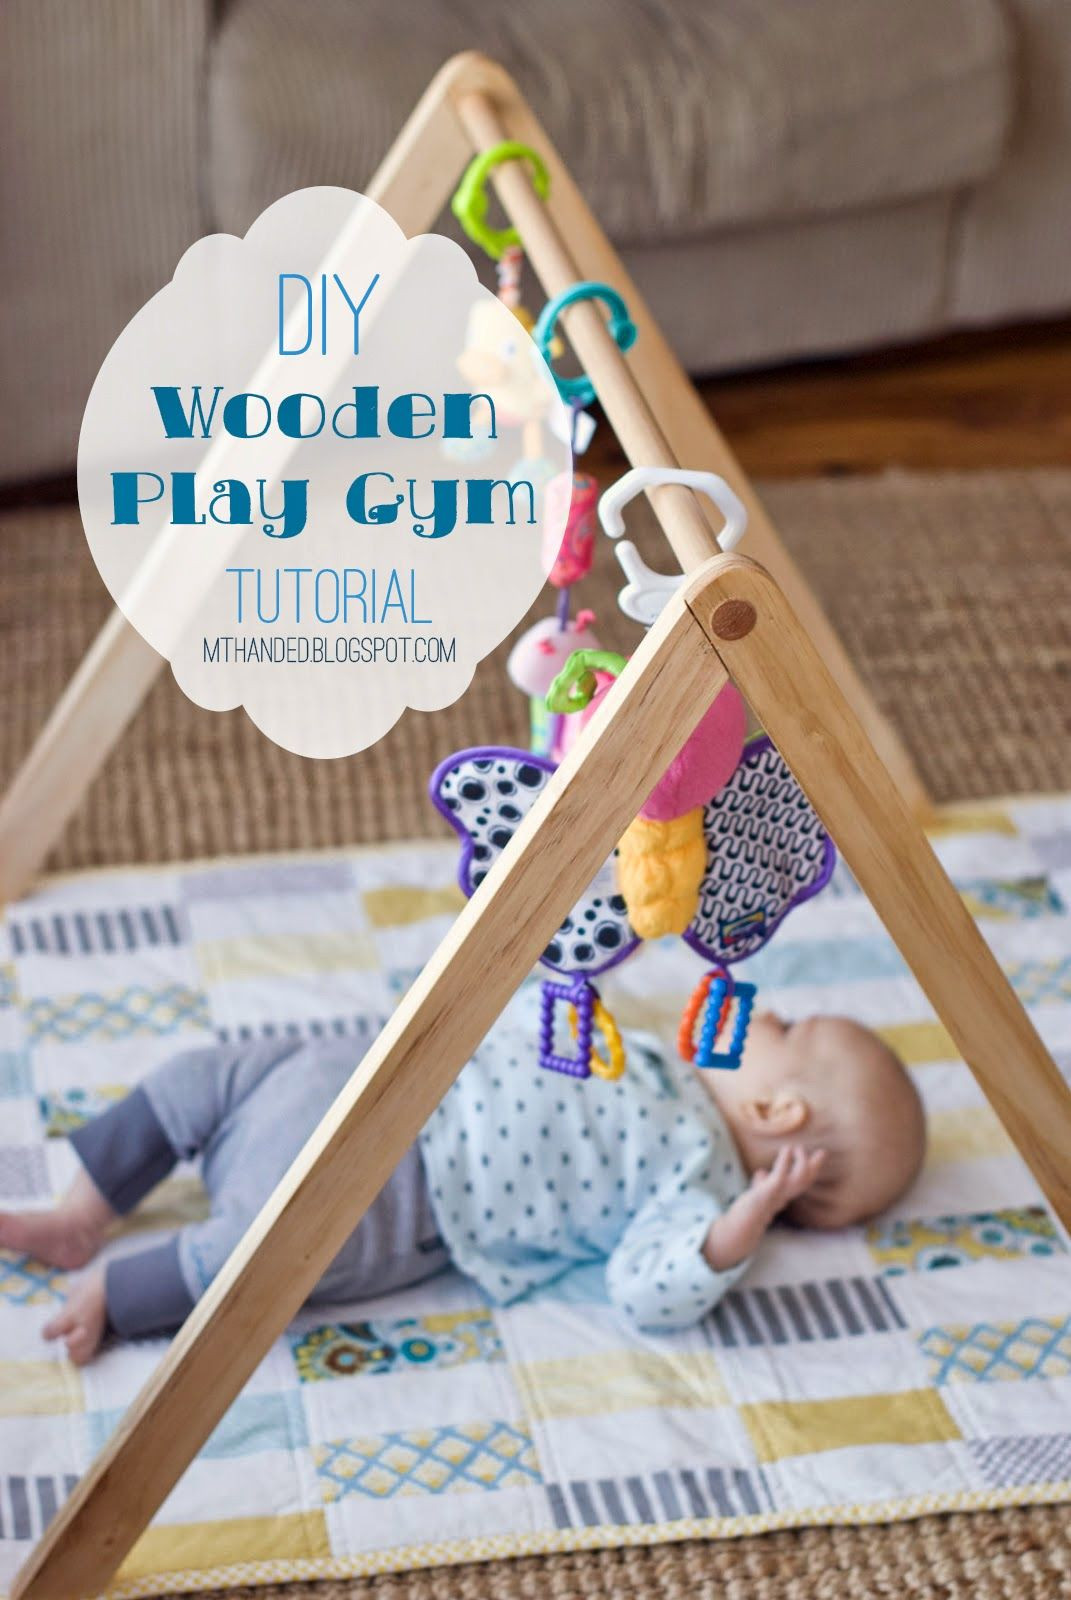 Baby Diy  The Best DIY Projects to Craft For Your Newborn